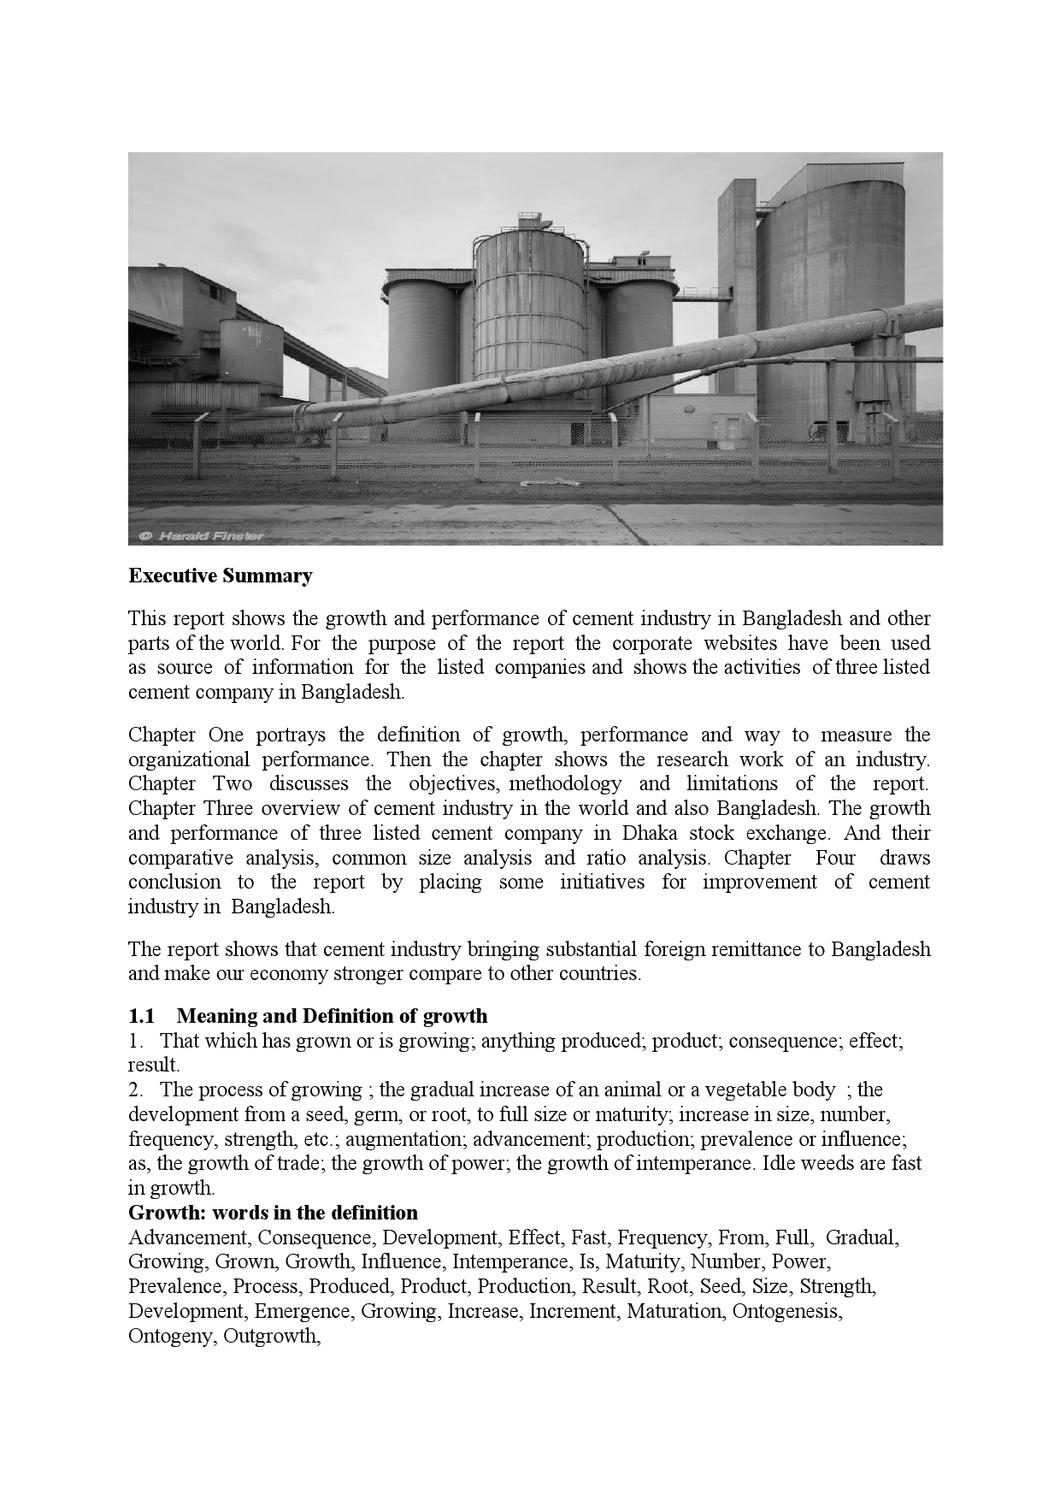 cement industry in bangladesh Earnings management behavior: a study on the cement industry of bangladesh helaluddin ahmed1 lecturer, department of business administration, world university of bangladesh md azim lecturer, department of business administration, world university of.